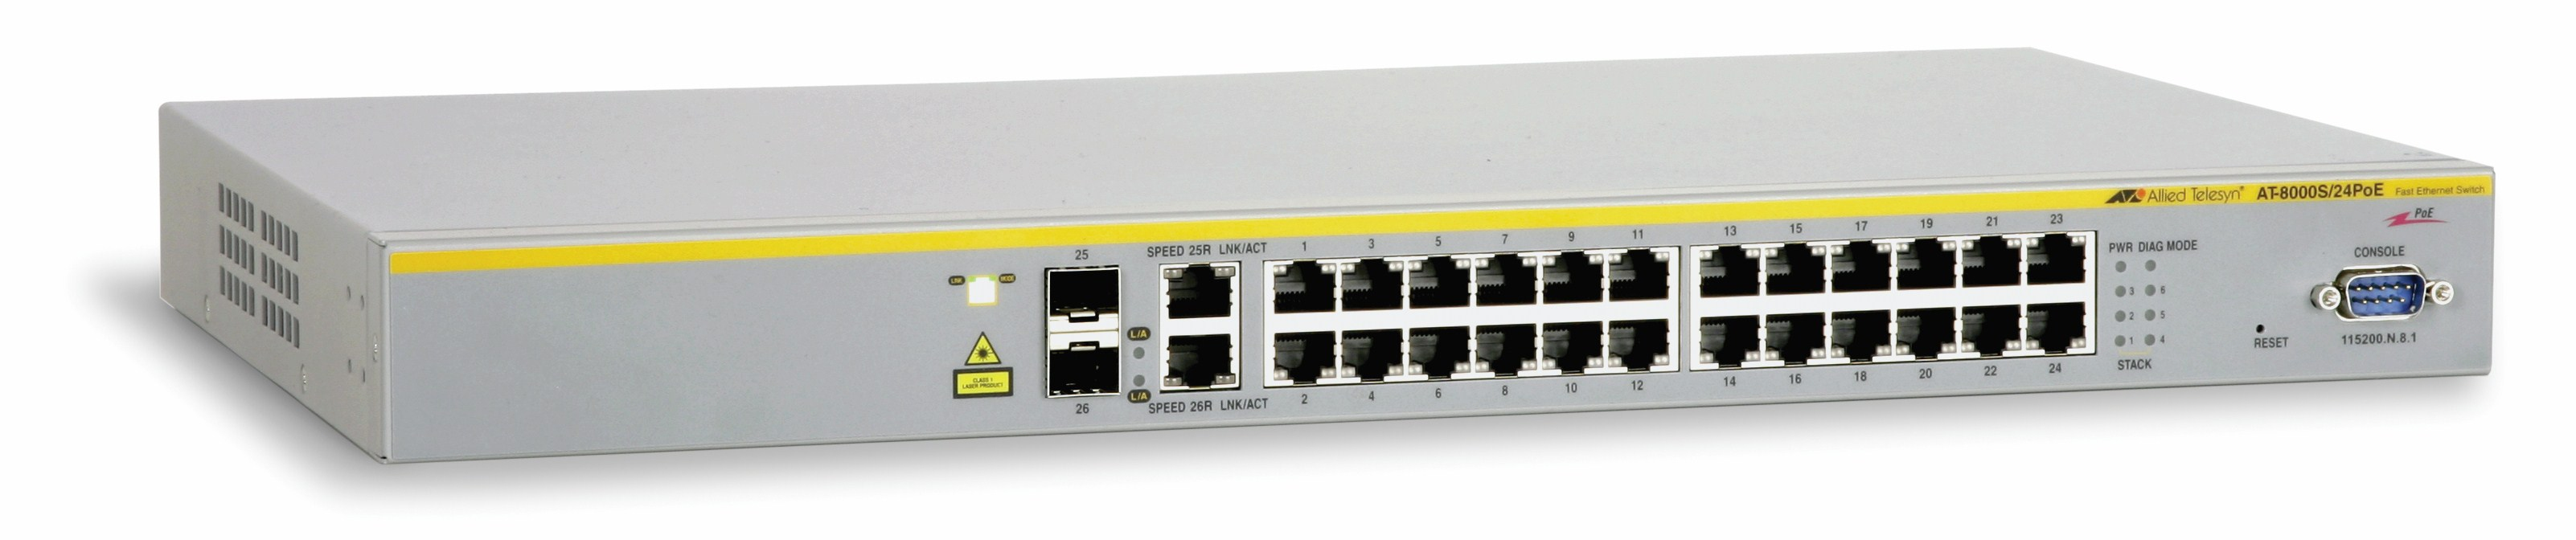 Allied Telesis AT-8000S/24PoE